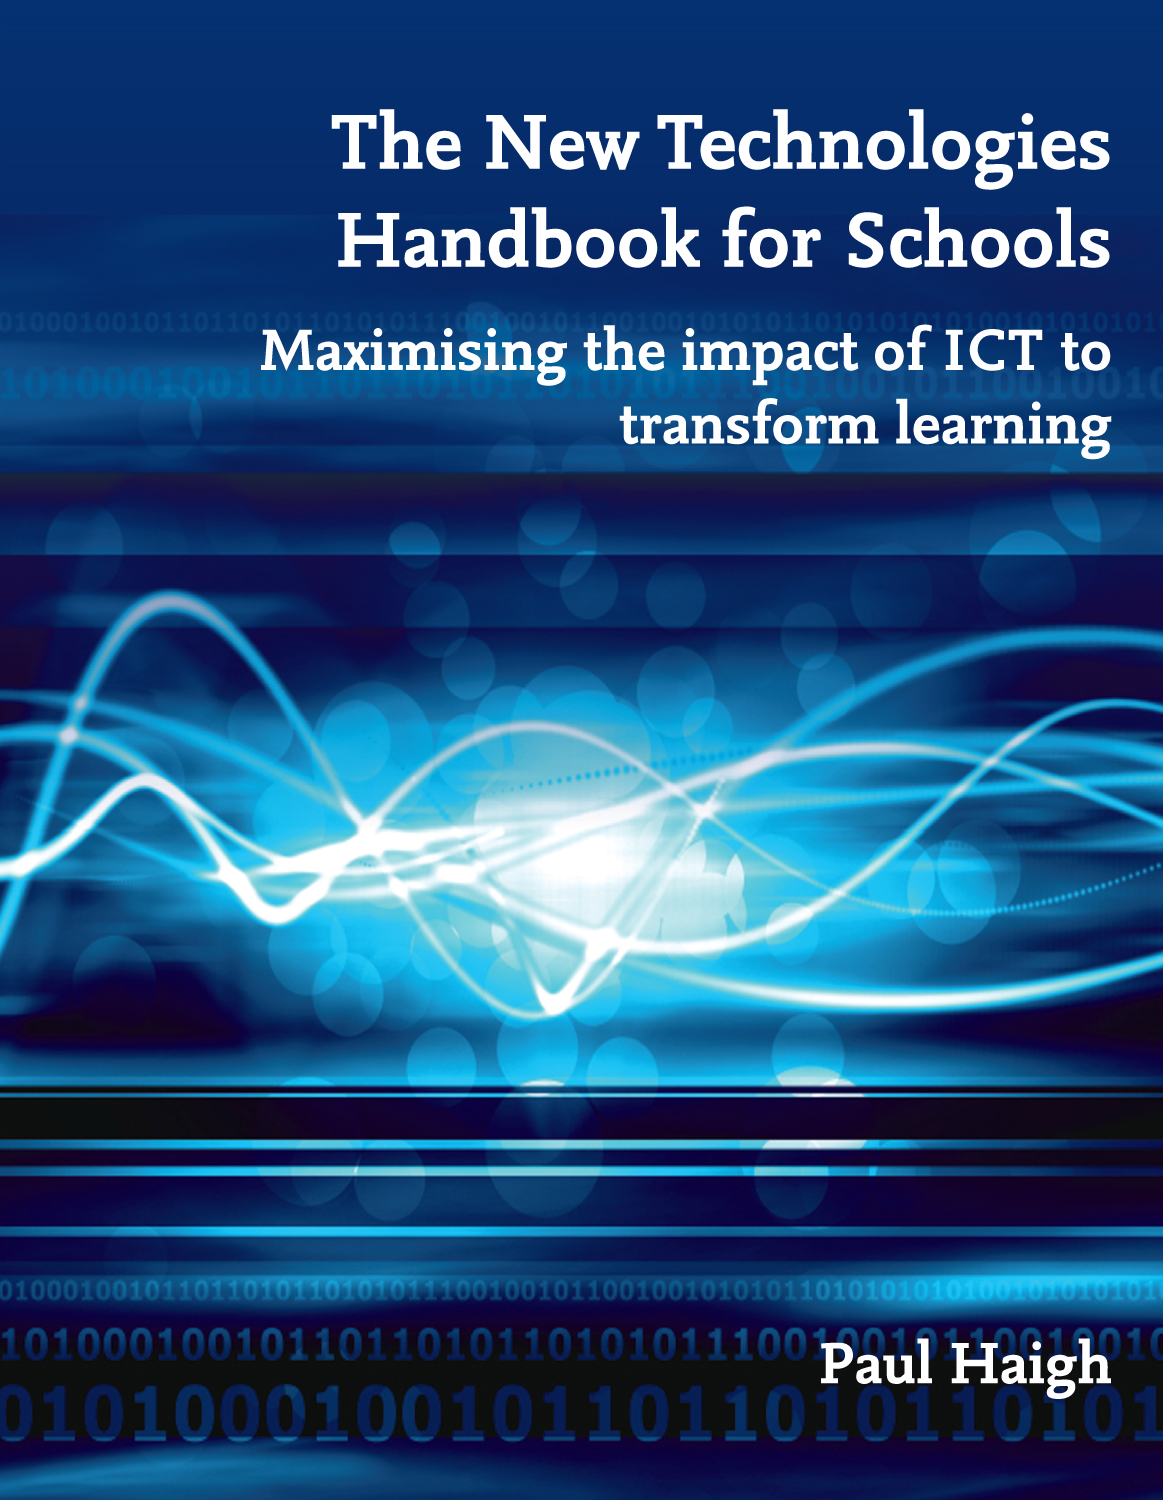 The New Technologies Handbook for Schools